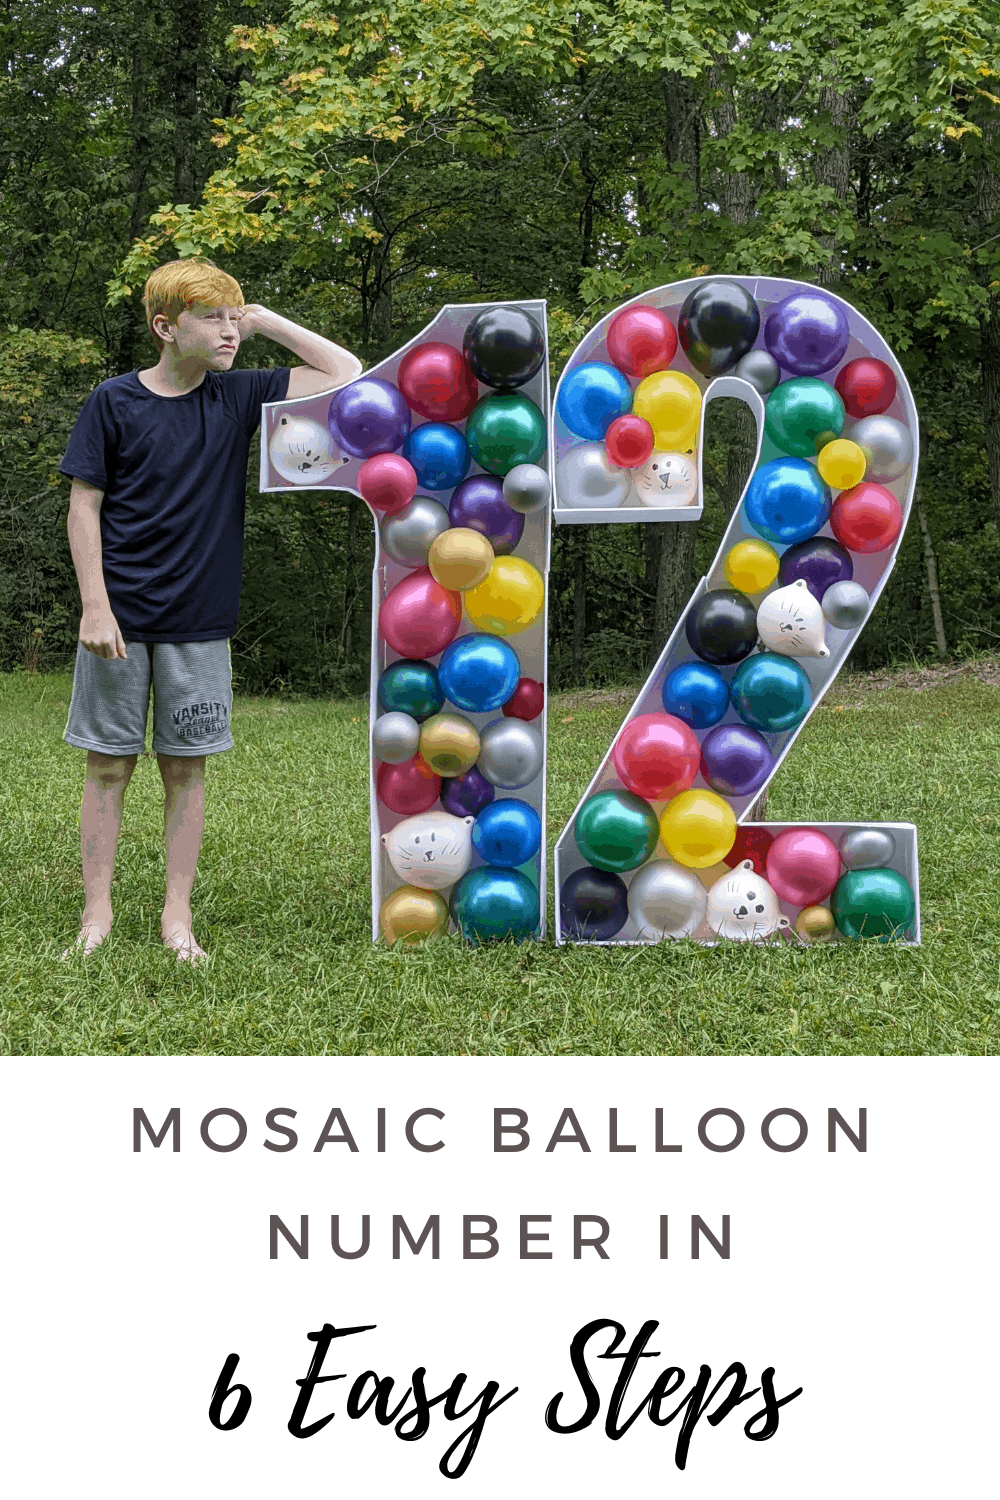 Make your own Mosaic Balloon Number for your next get together. Check out the 6 easy steps on how to make a mosaic balloon number sculpture.